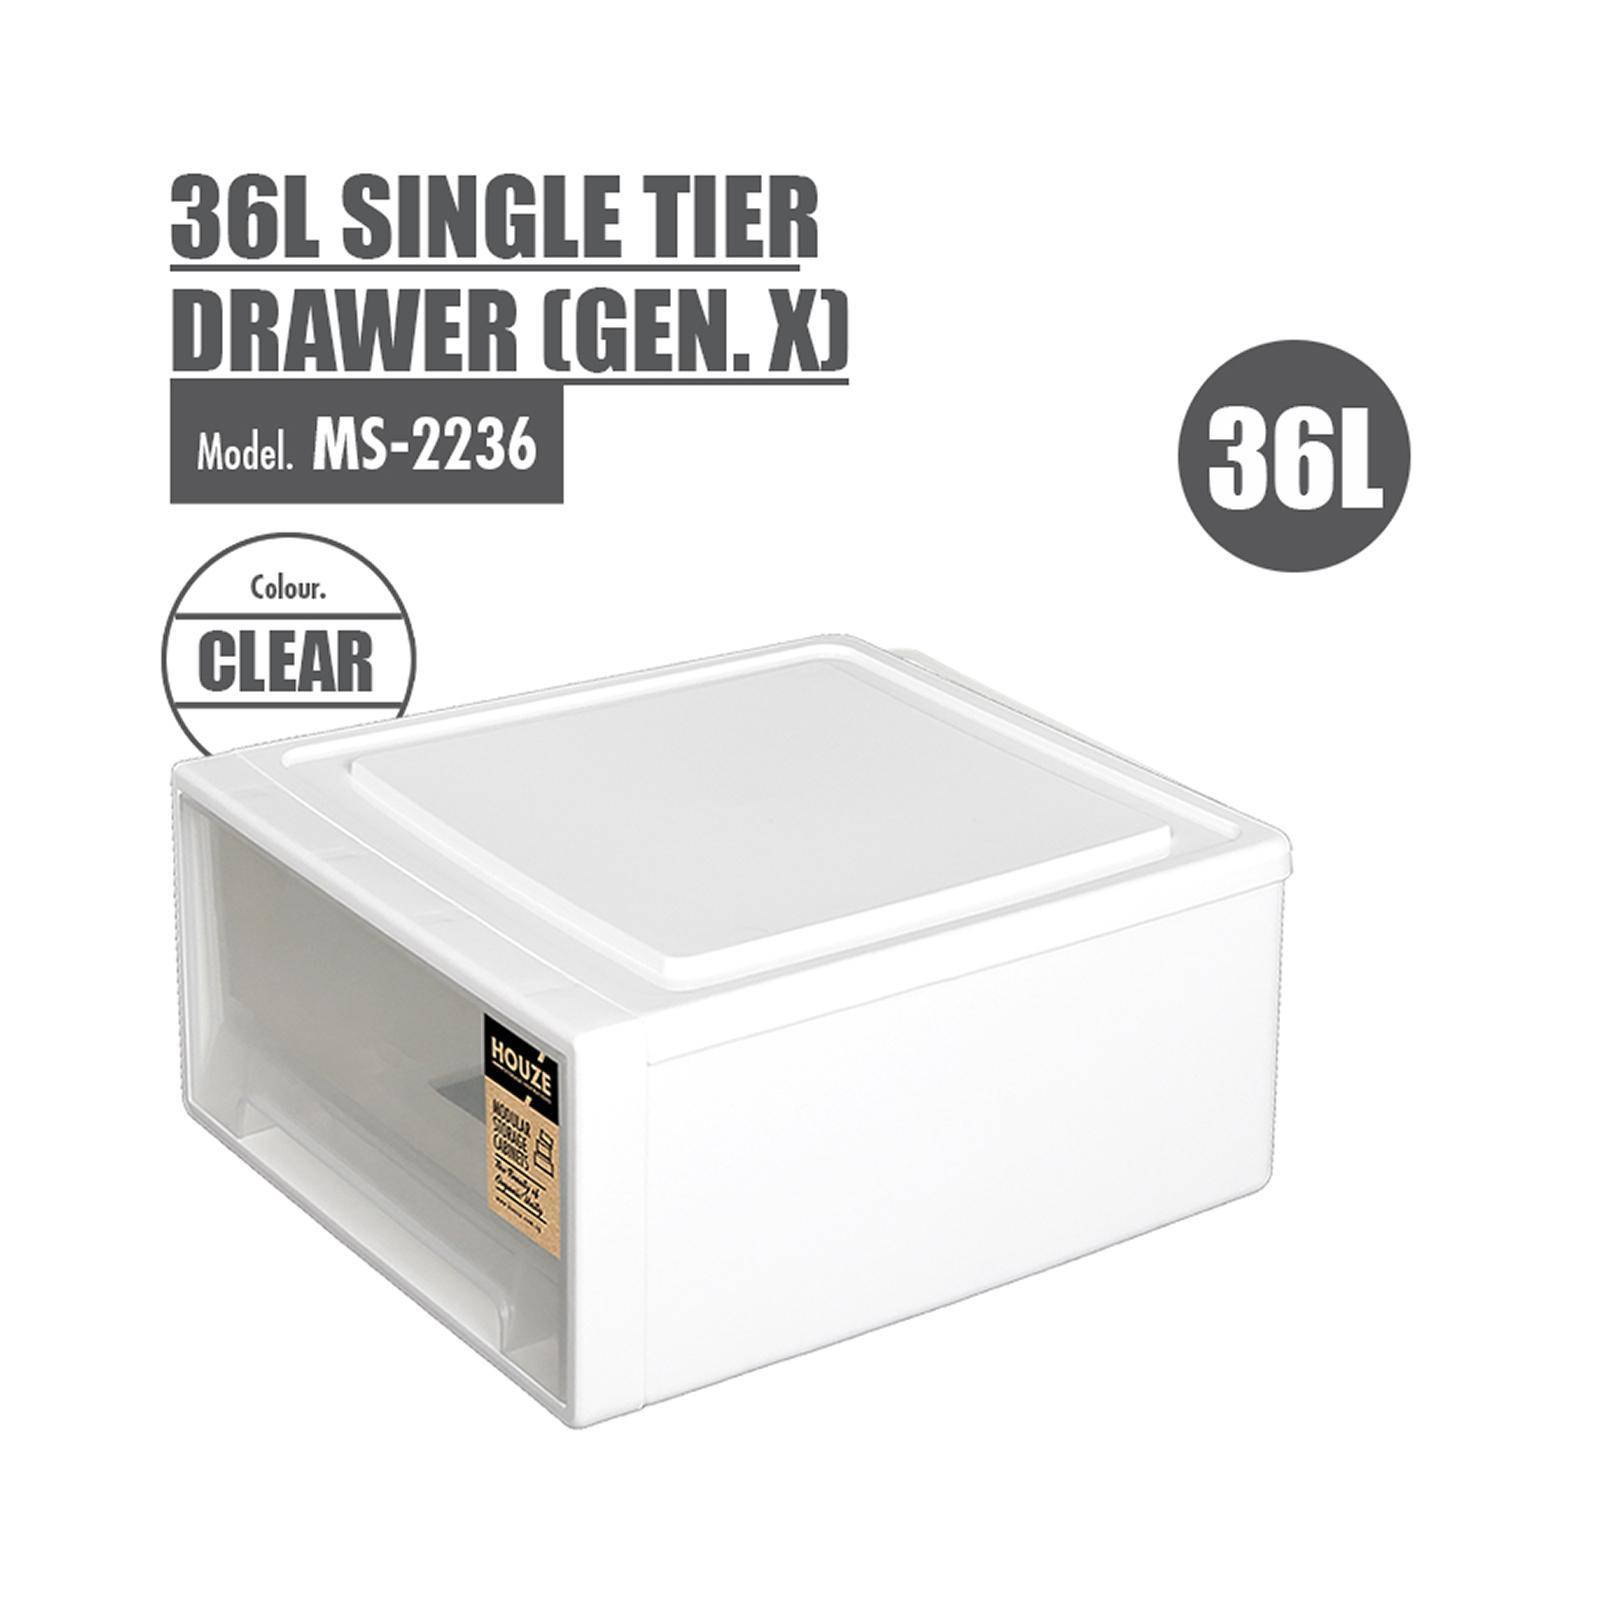 HOUZE 36L Single Tier Drawer